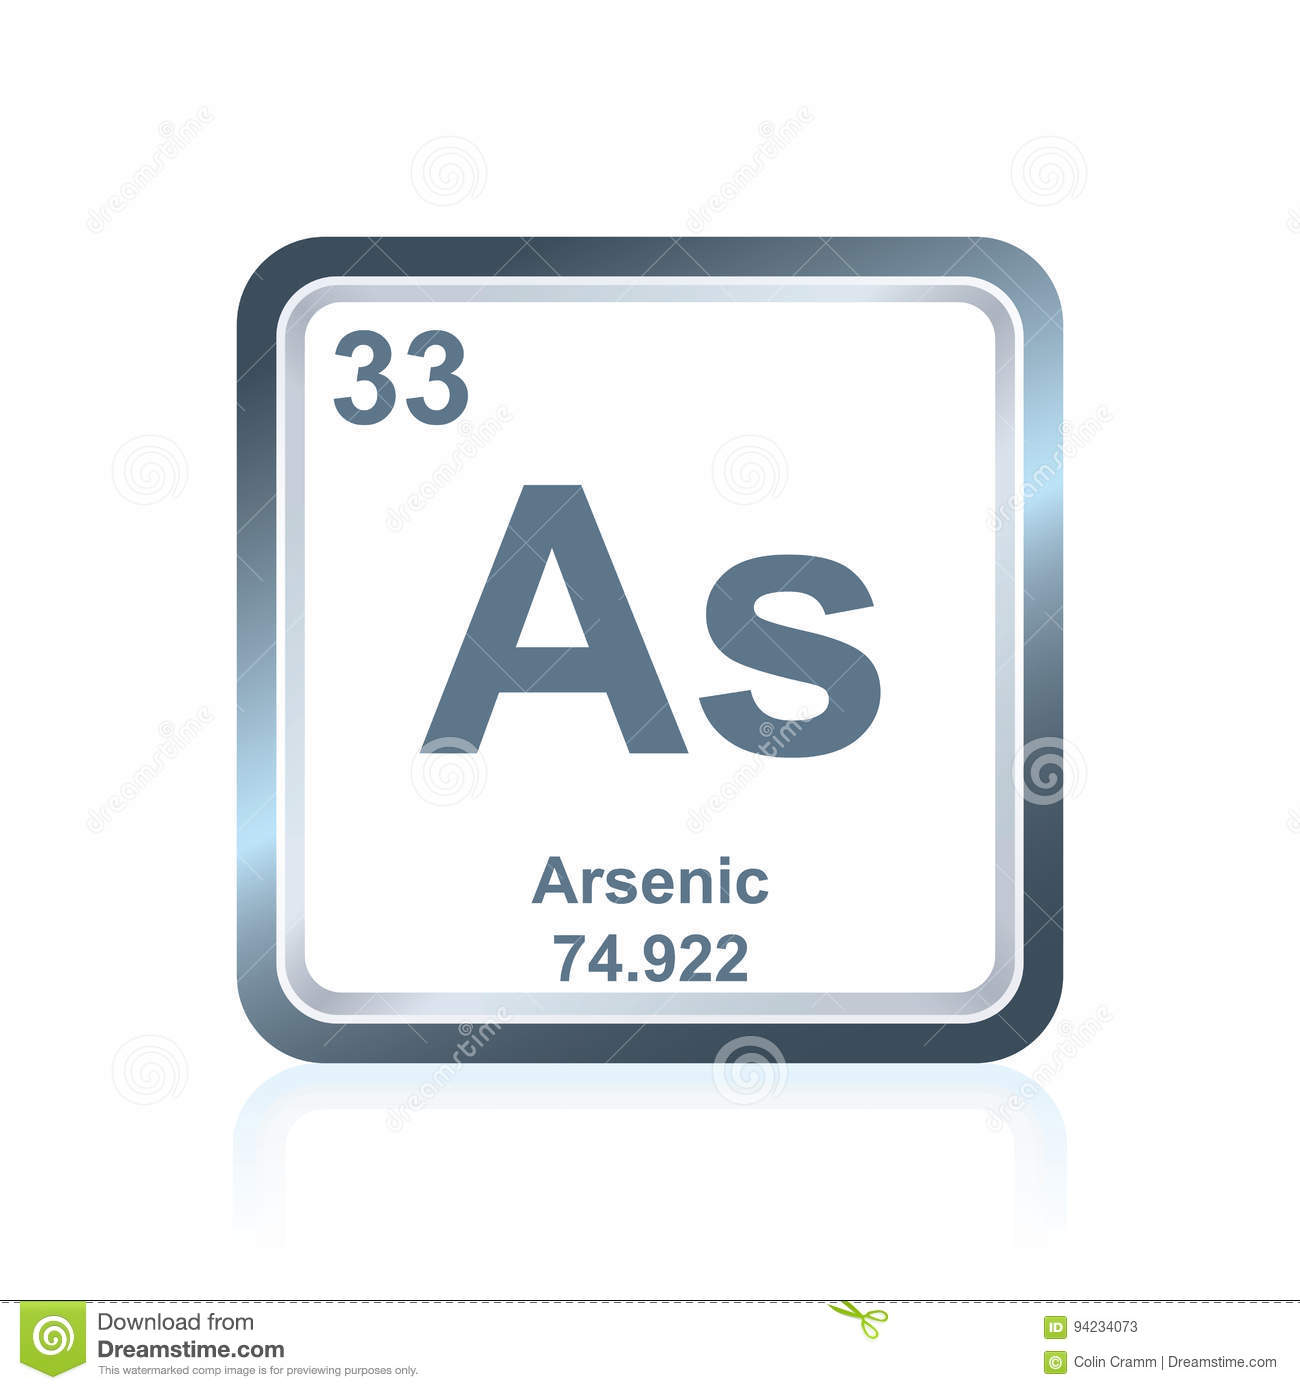 Chemical element arsenic from the periodic table stock chemical element arsenic from the periodic table biocorpaavc Image collections